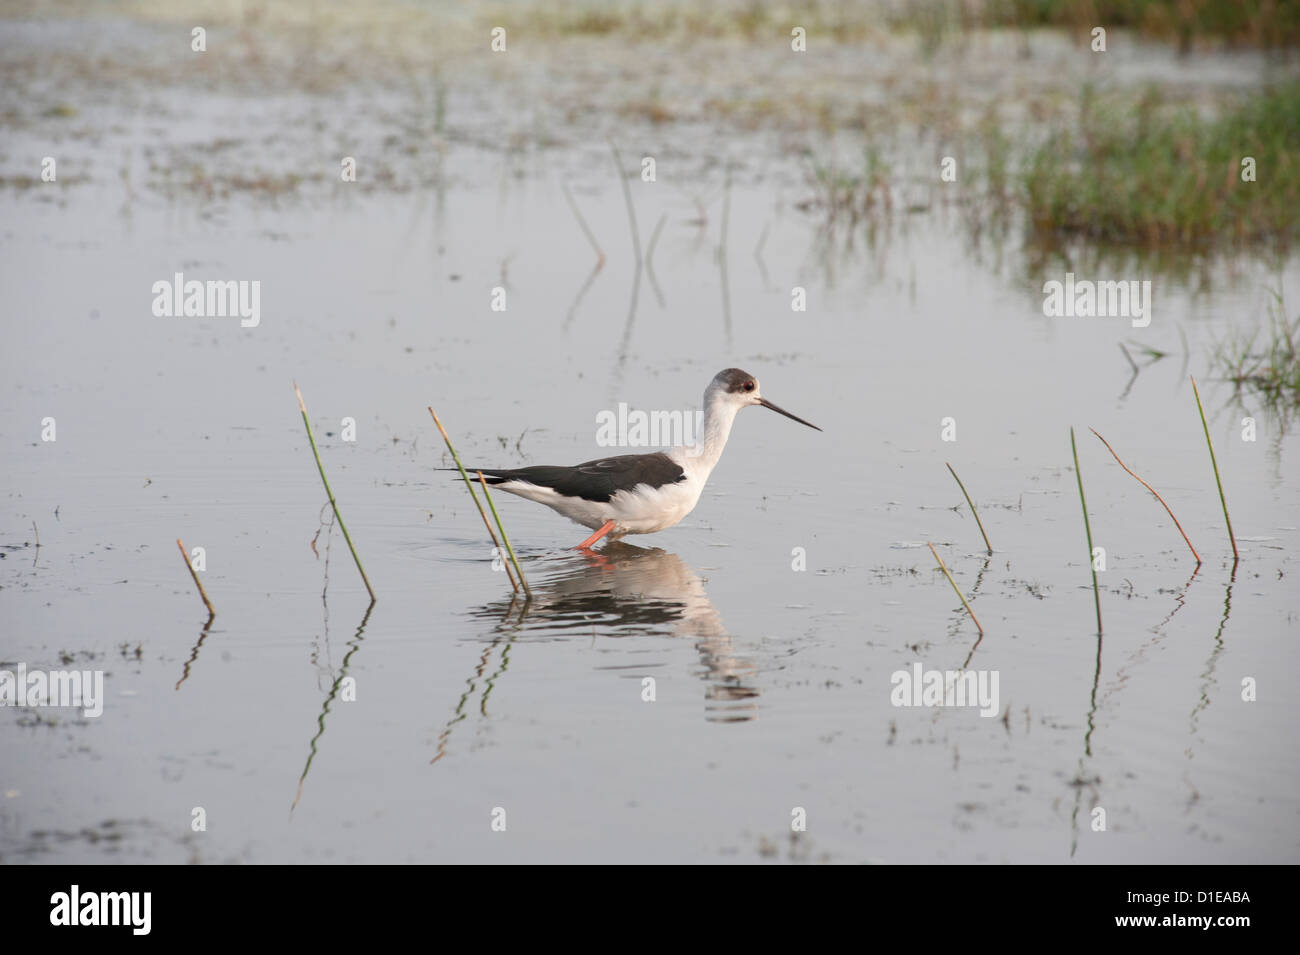 Black winged stilt wading in the shallow wetland waters at the edge of Chilika Lake, Orissa, India, Asia - Stock Image